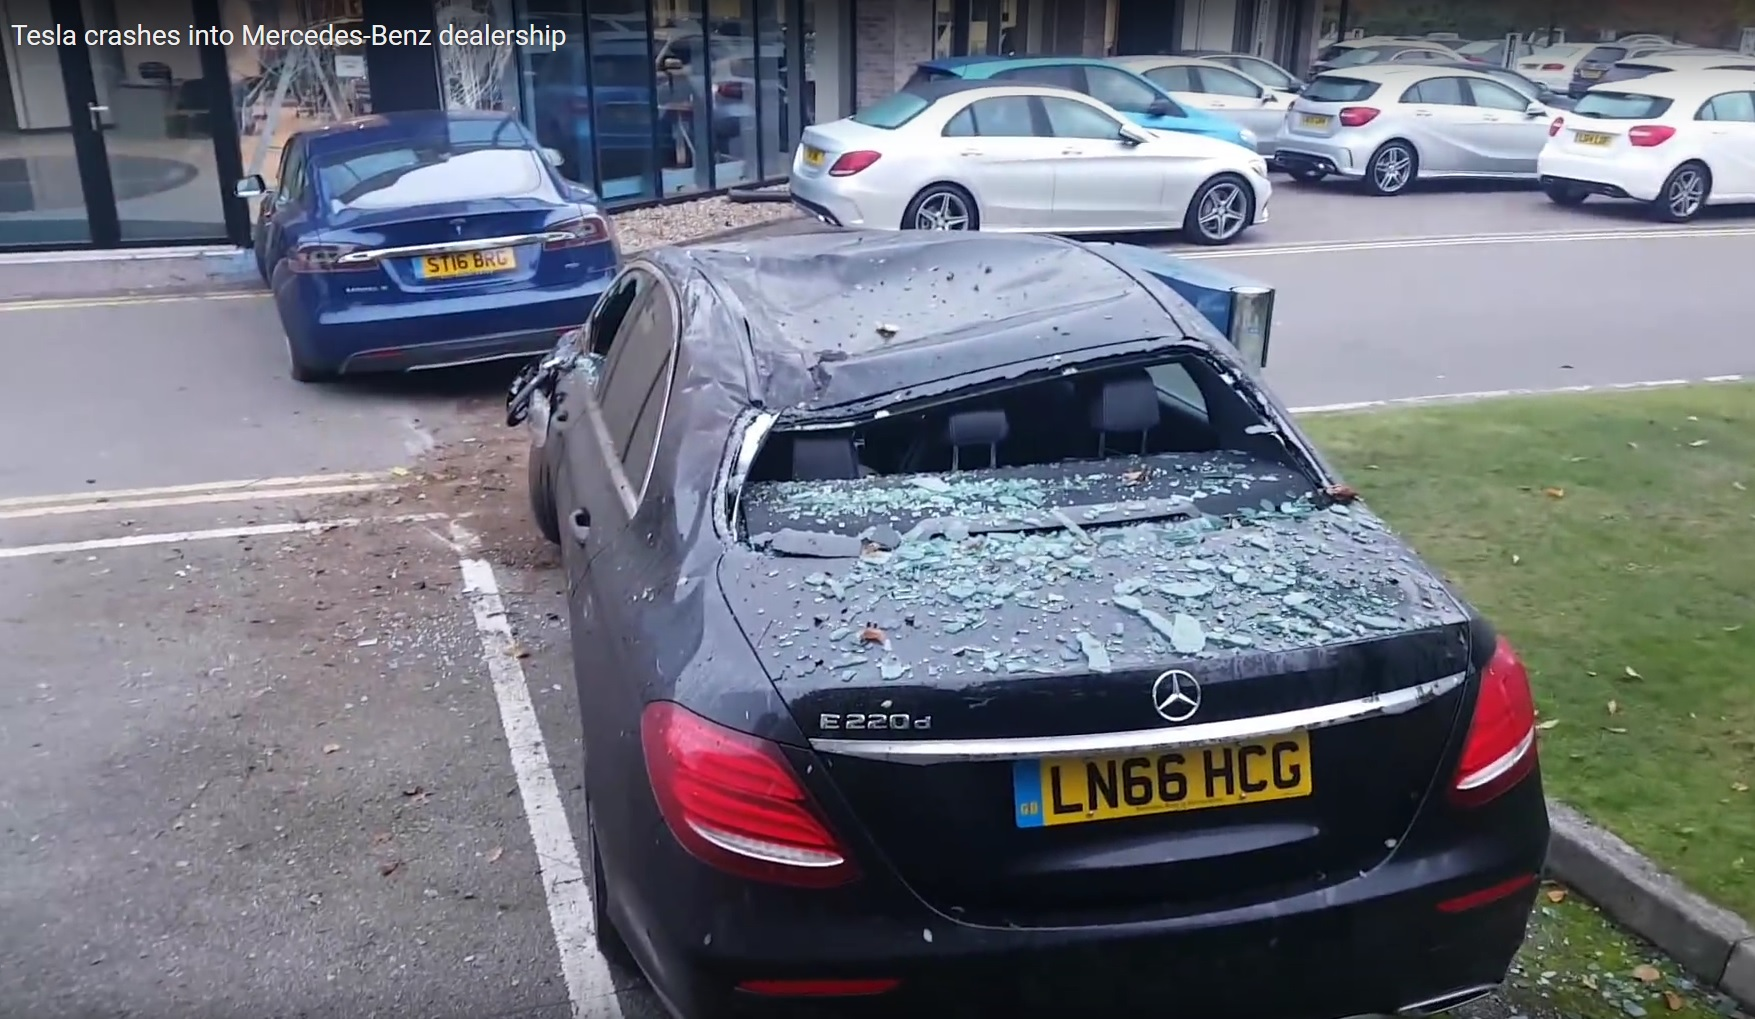 Tesla Model S mangles Mercedes E-Class, British dealership ...